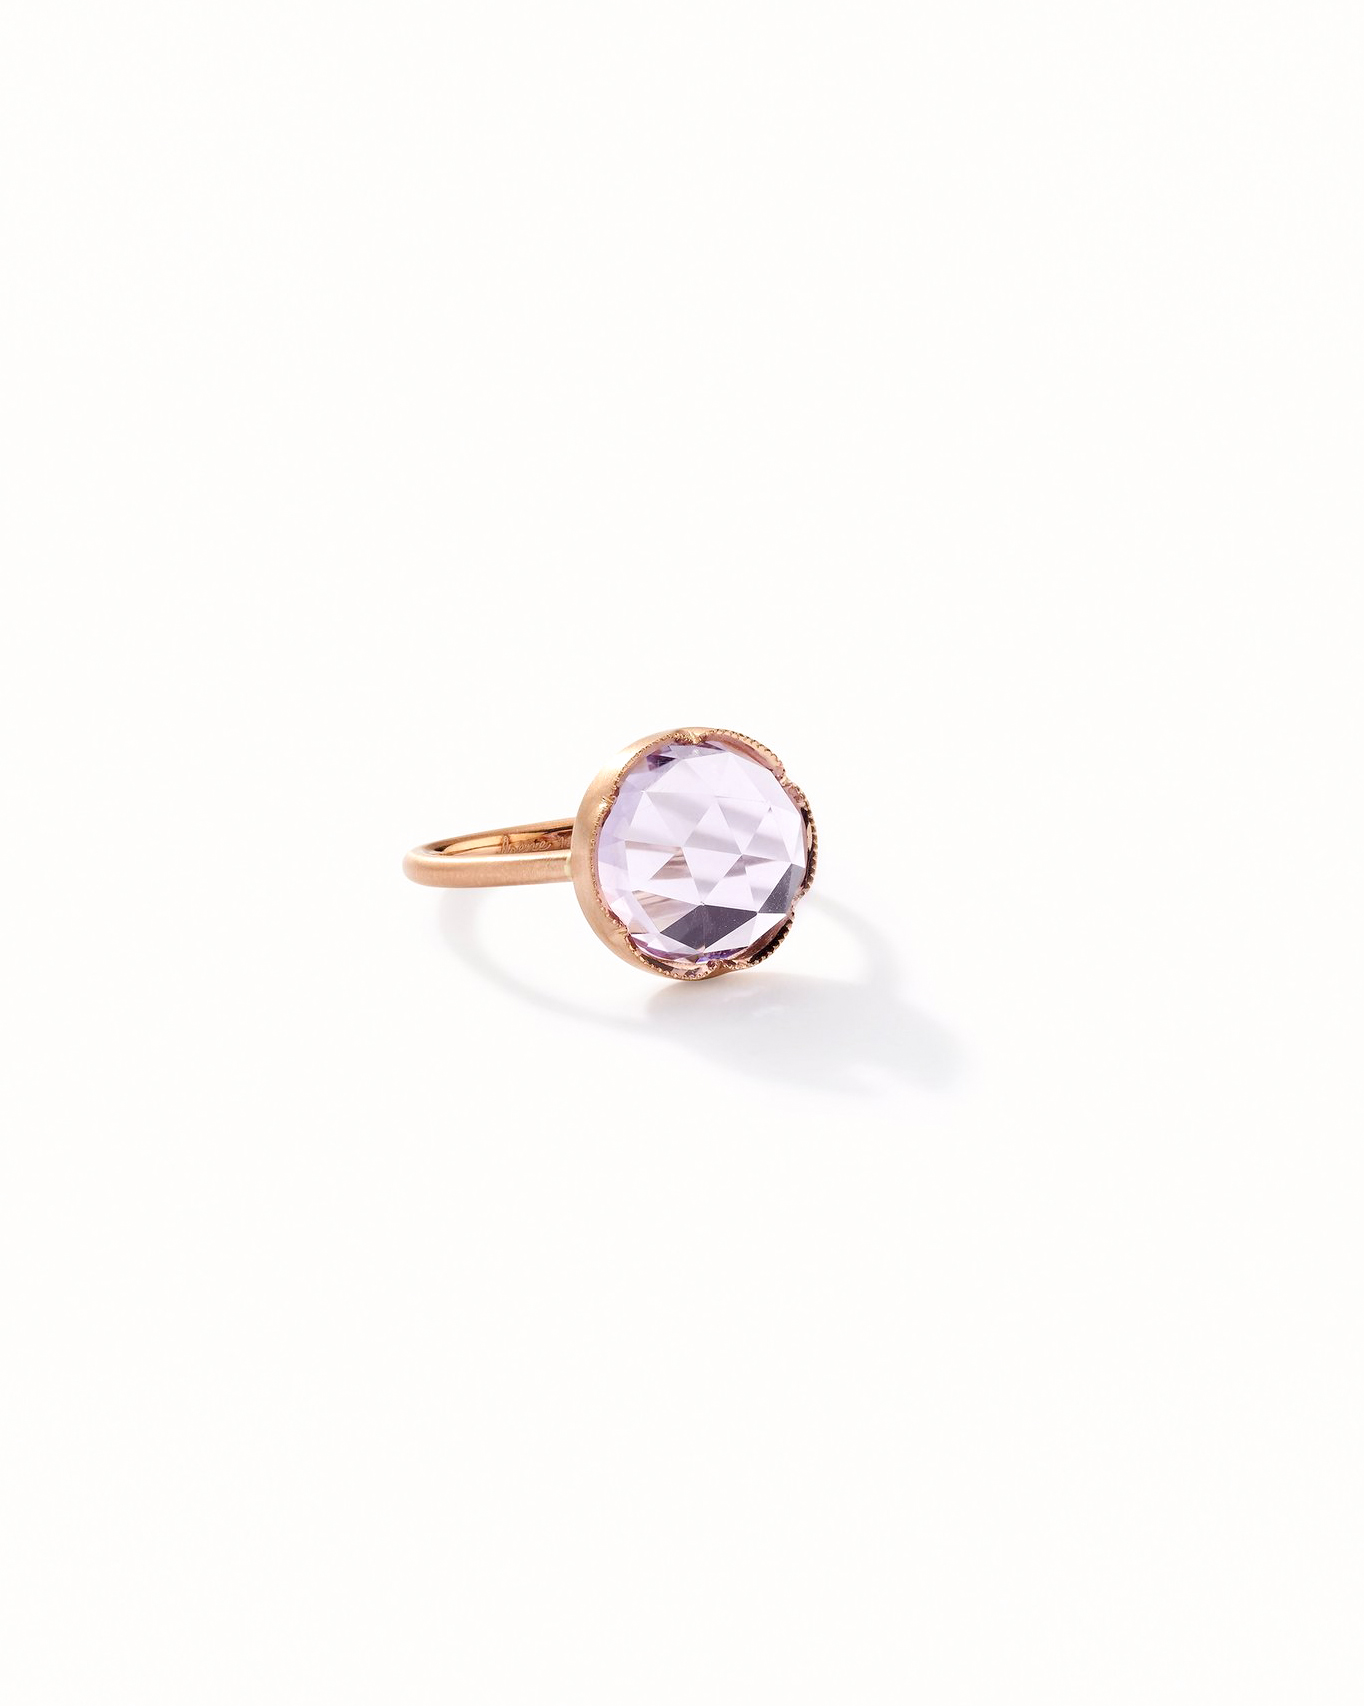 Rose of France scalloped coin-edge setting engagement ring